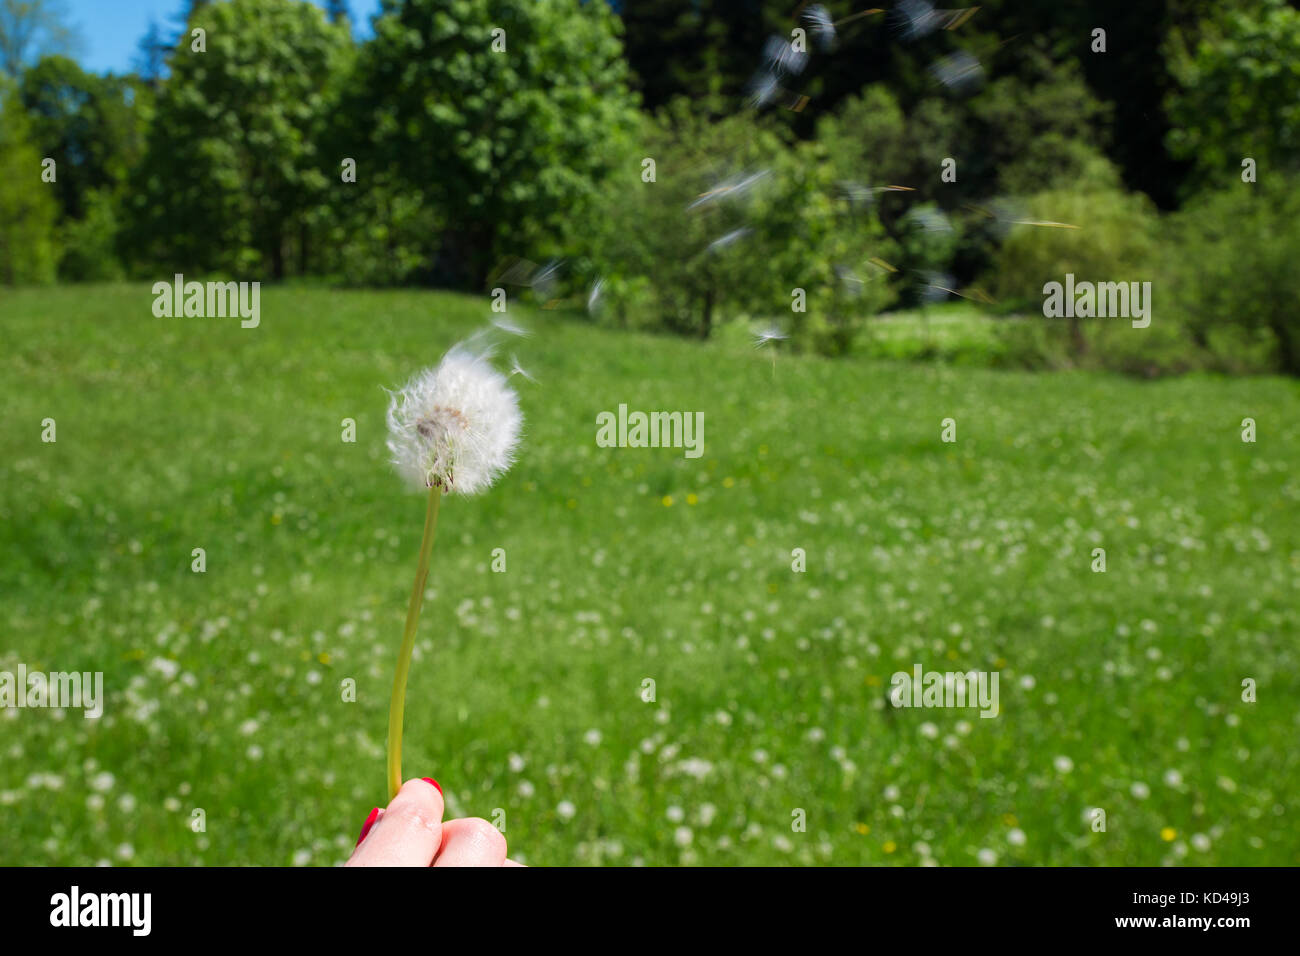 Woman holds a dandelion and blows on it. Woman hand holding a dandelion against the green maedow Stock Photo